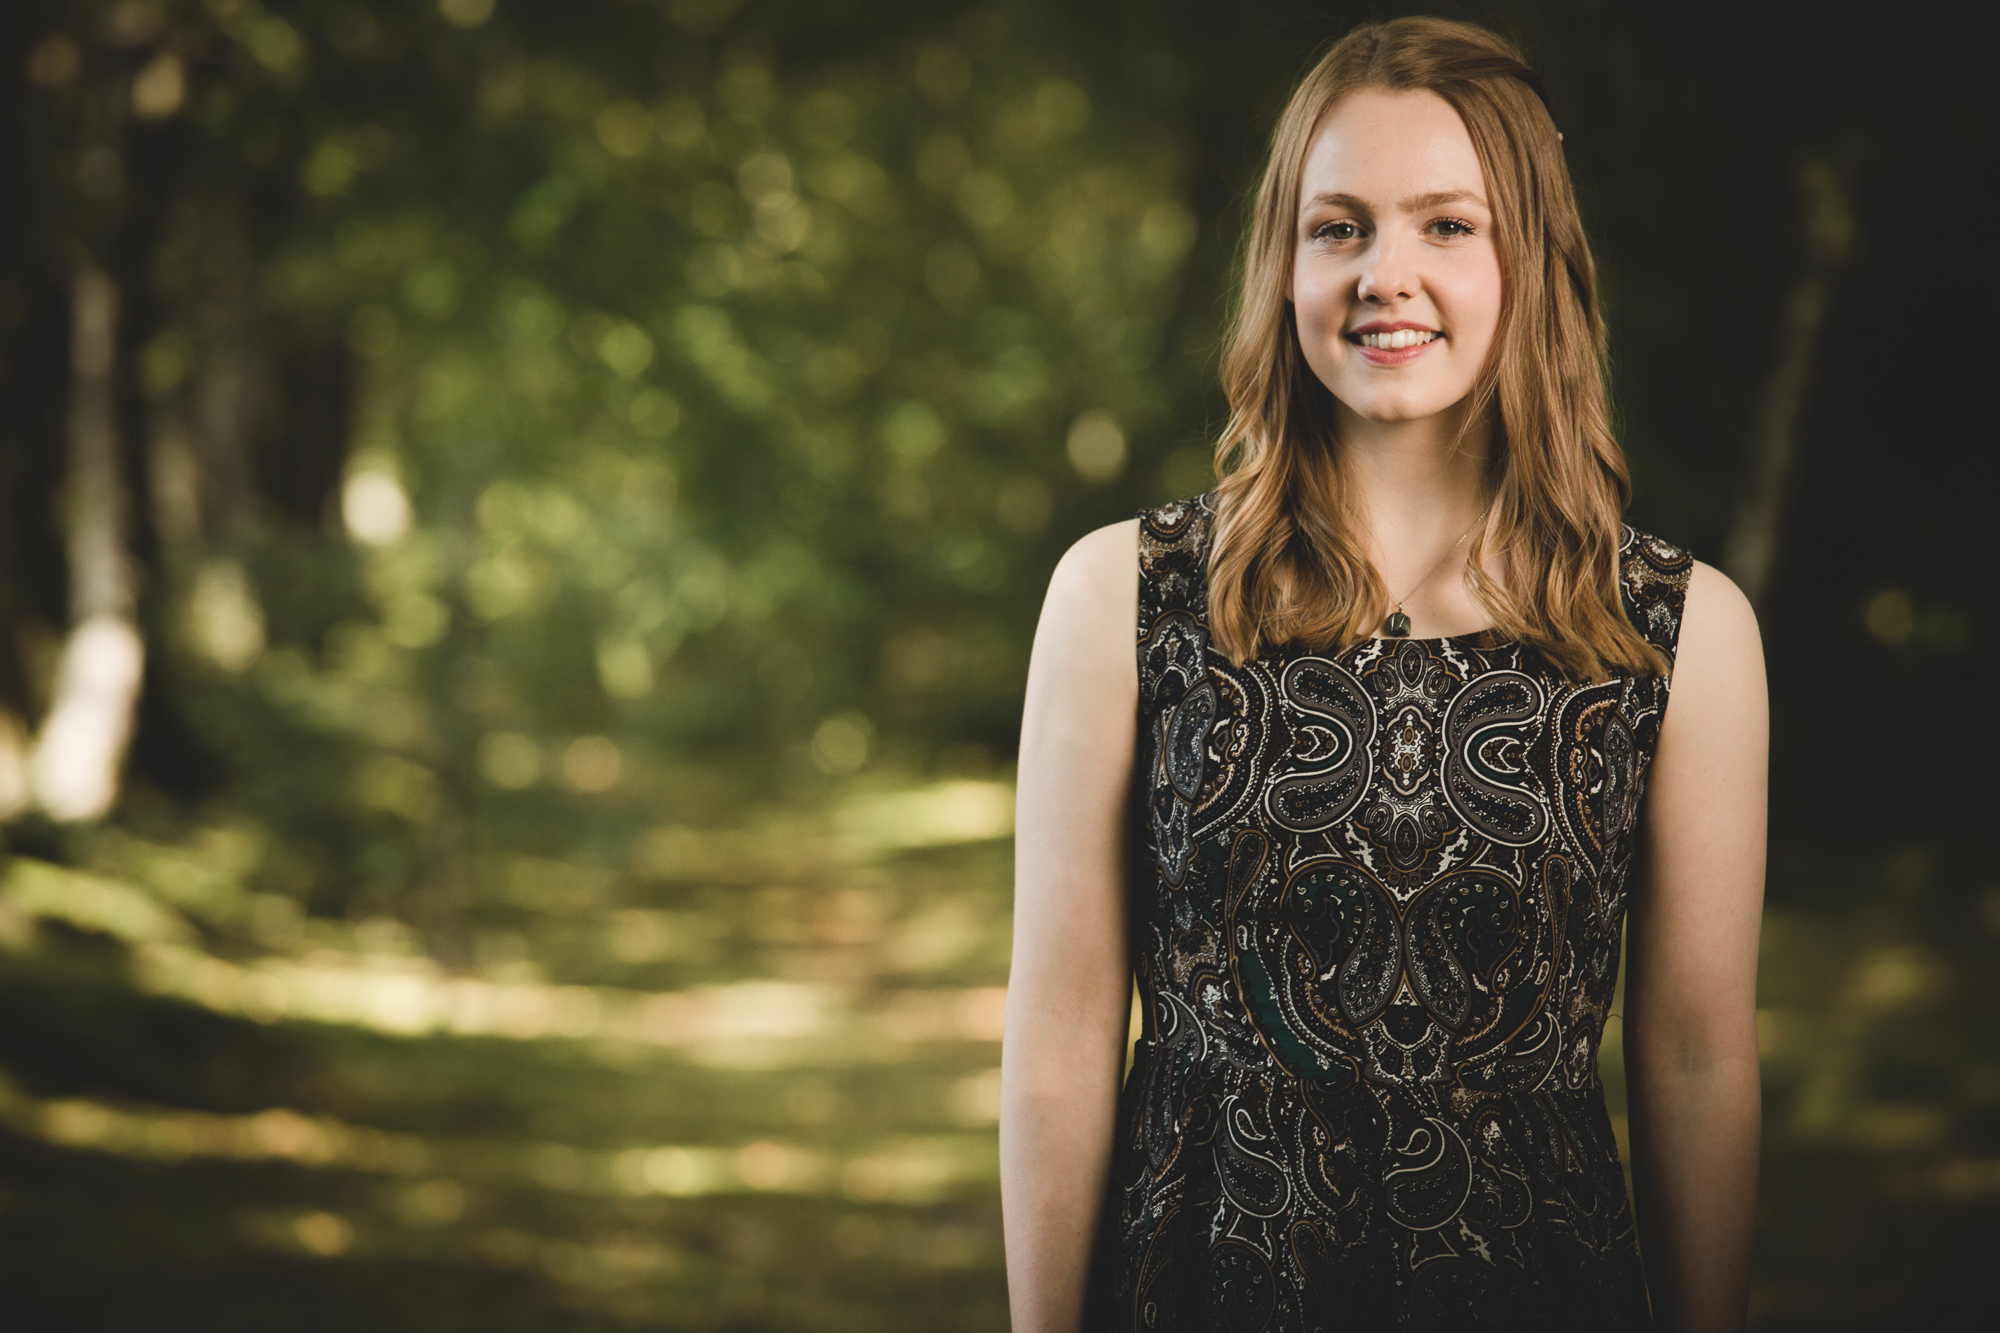 Kim, from Glen Lyon, has been hailed as one of Scotland's finest young traditional singers.